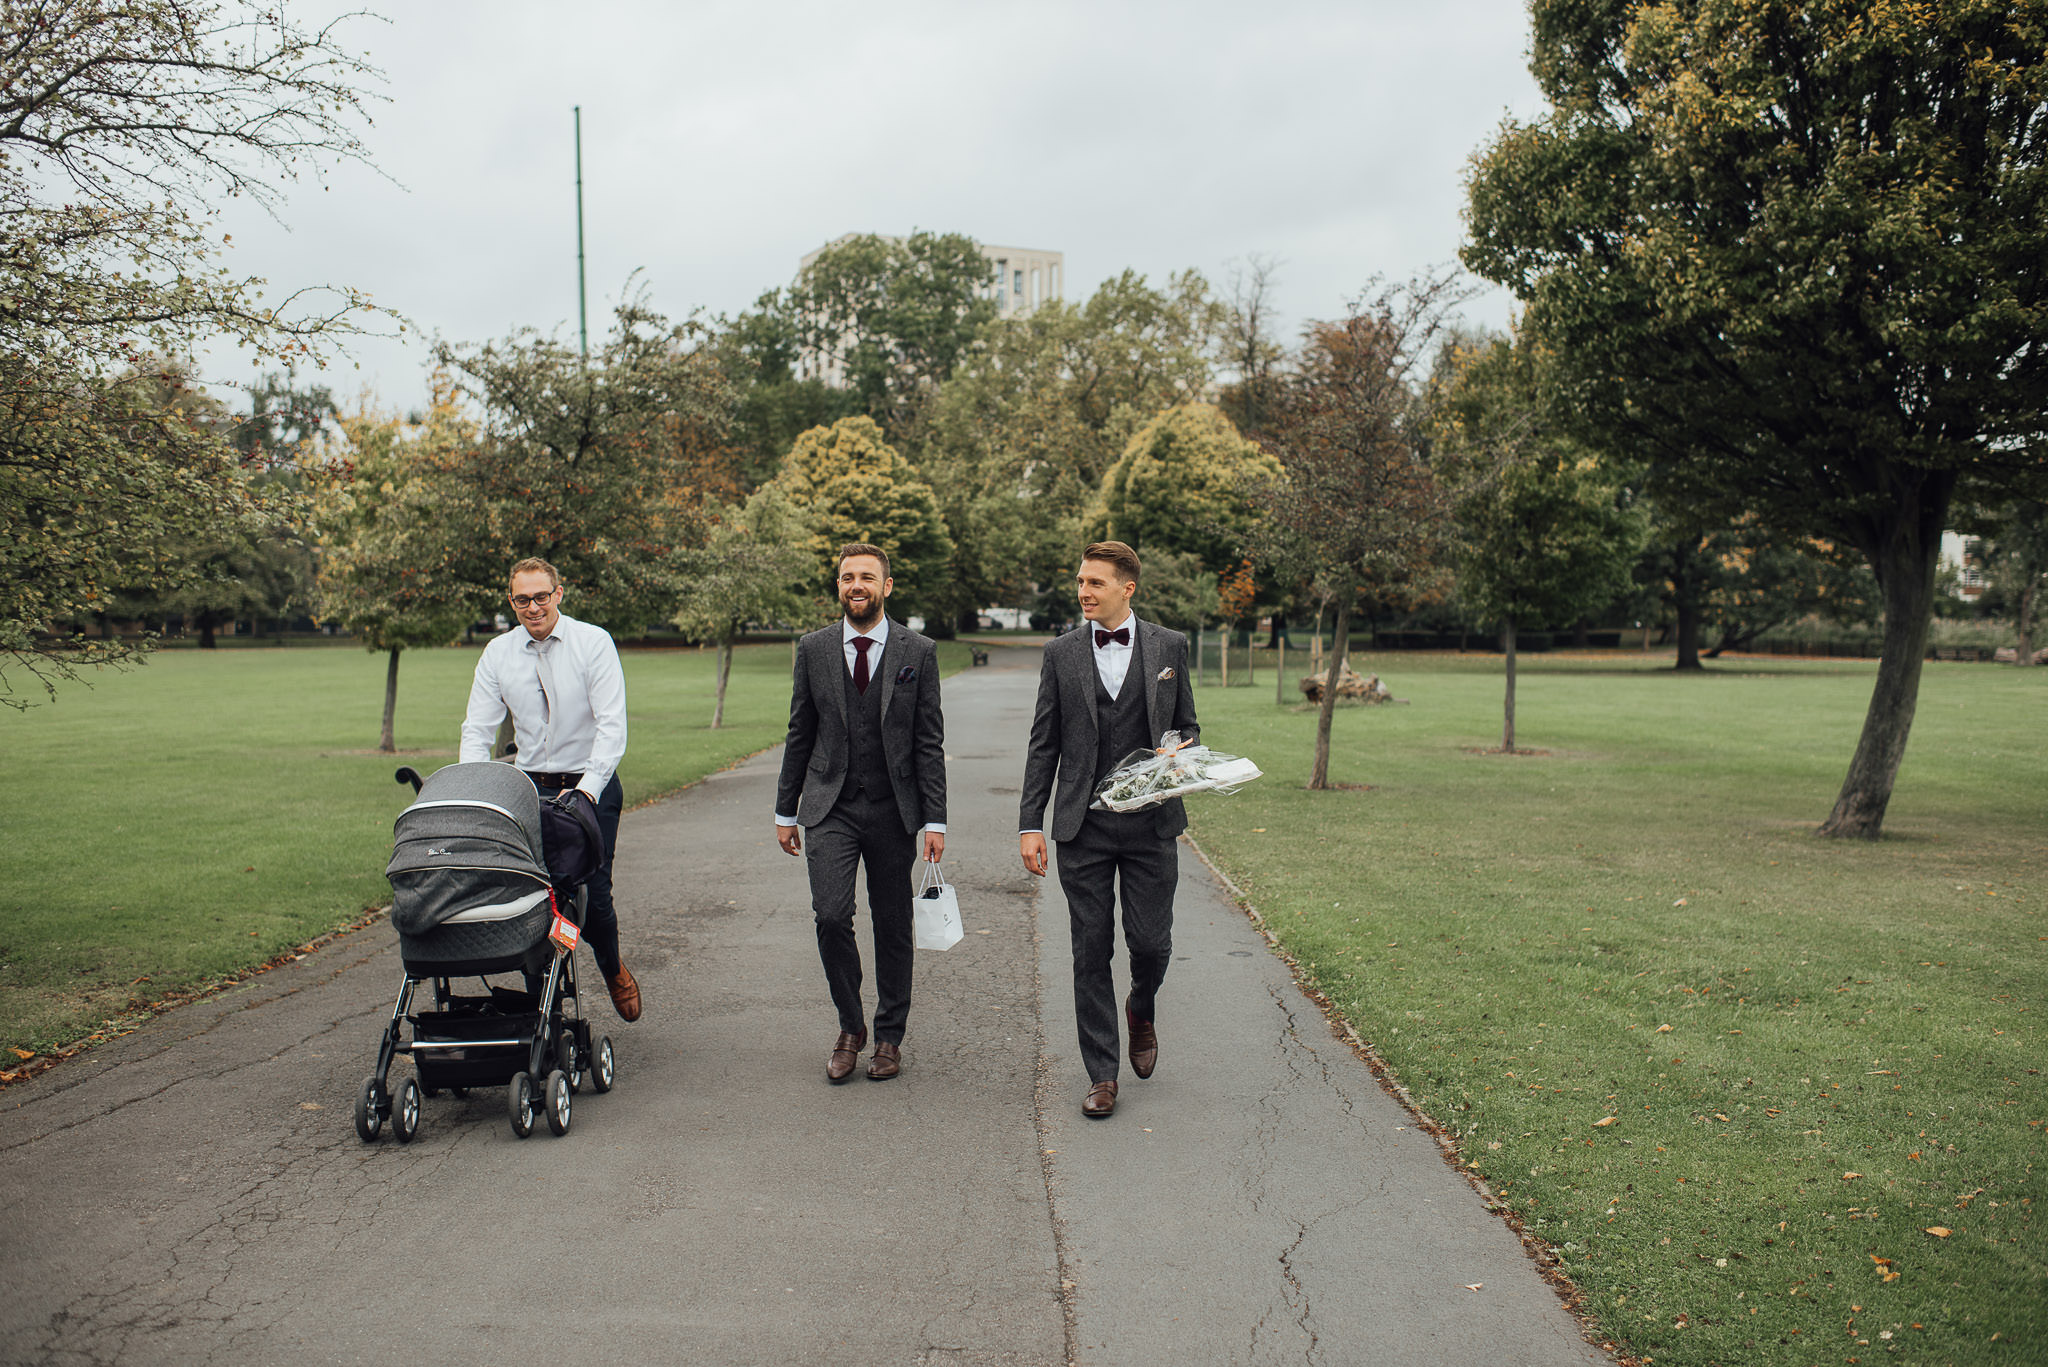 Clissold park wedding in stoke newington town hall wedding by creative and alternative london wedding photographer the shannons photography